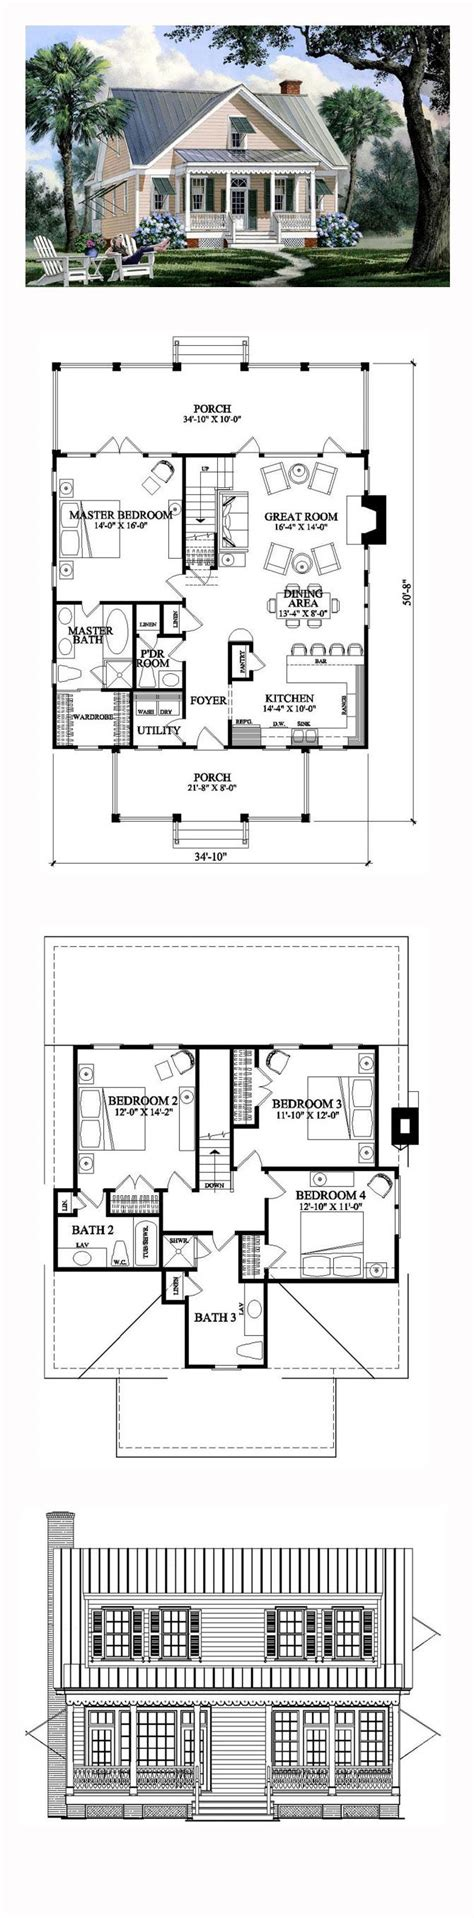 25 best ideas about cabin floor plans on pinterest small home plans log cabin plans and log best 25 lake house plans ideas on pinterest cabin floor